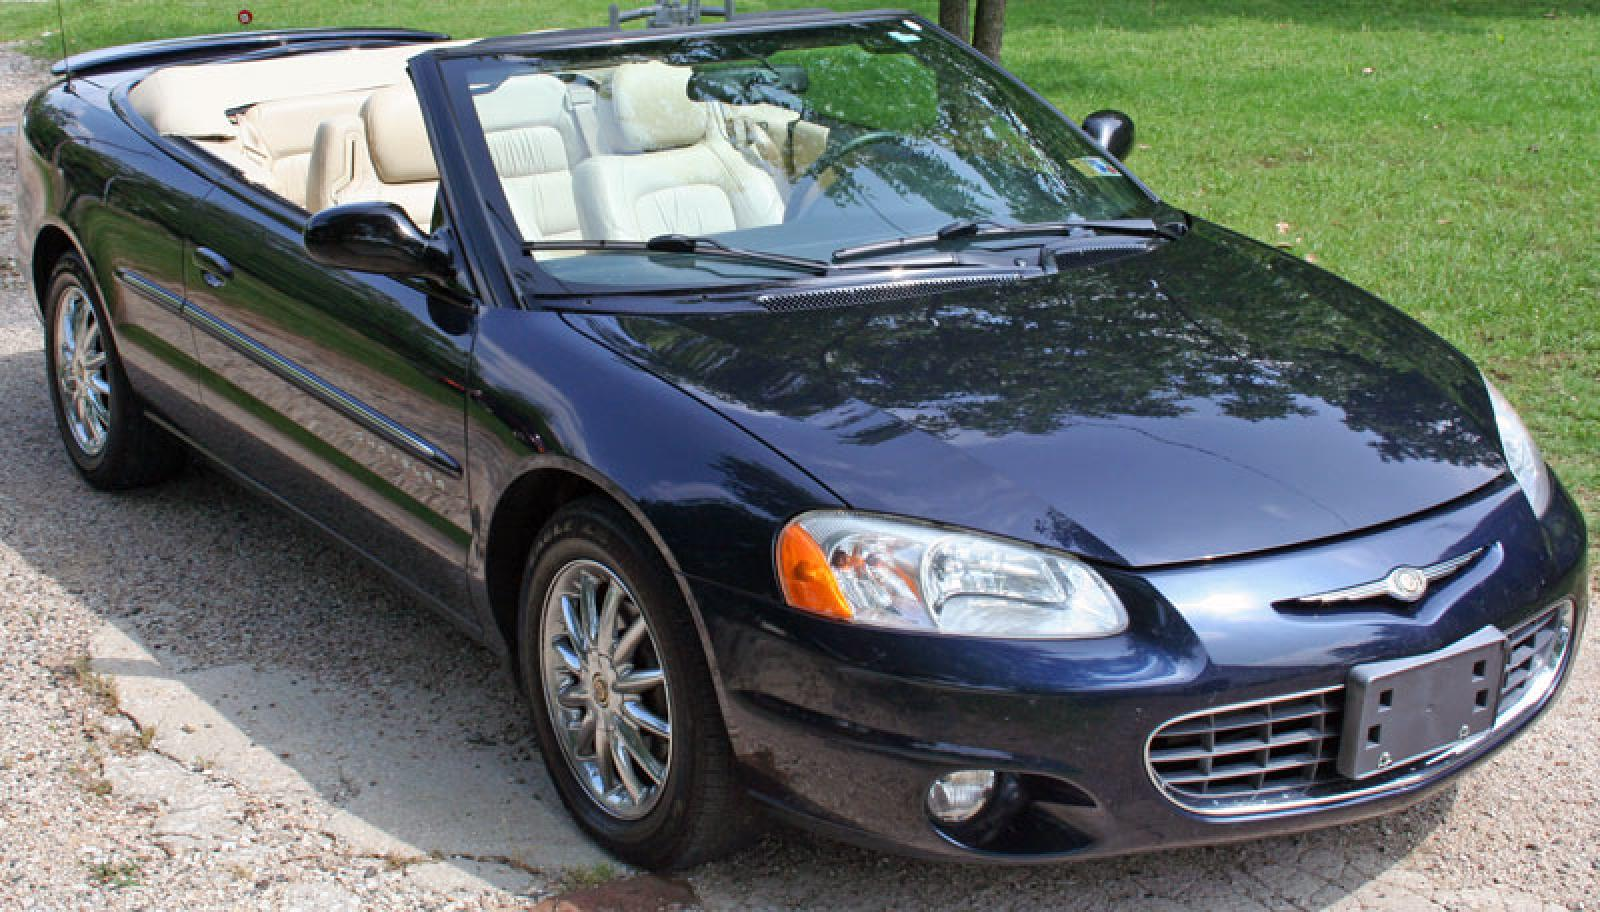 2001 chrysler sebring information and photos zombiedrive. Black Bedroom Furniture Sets. Home Design Ideas